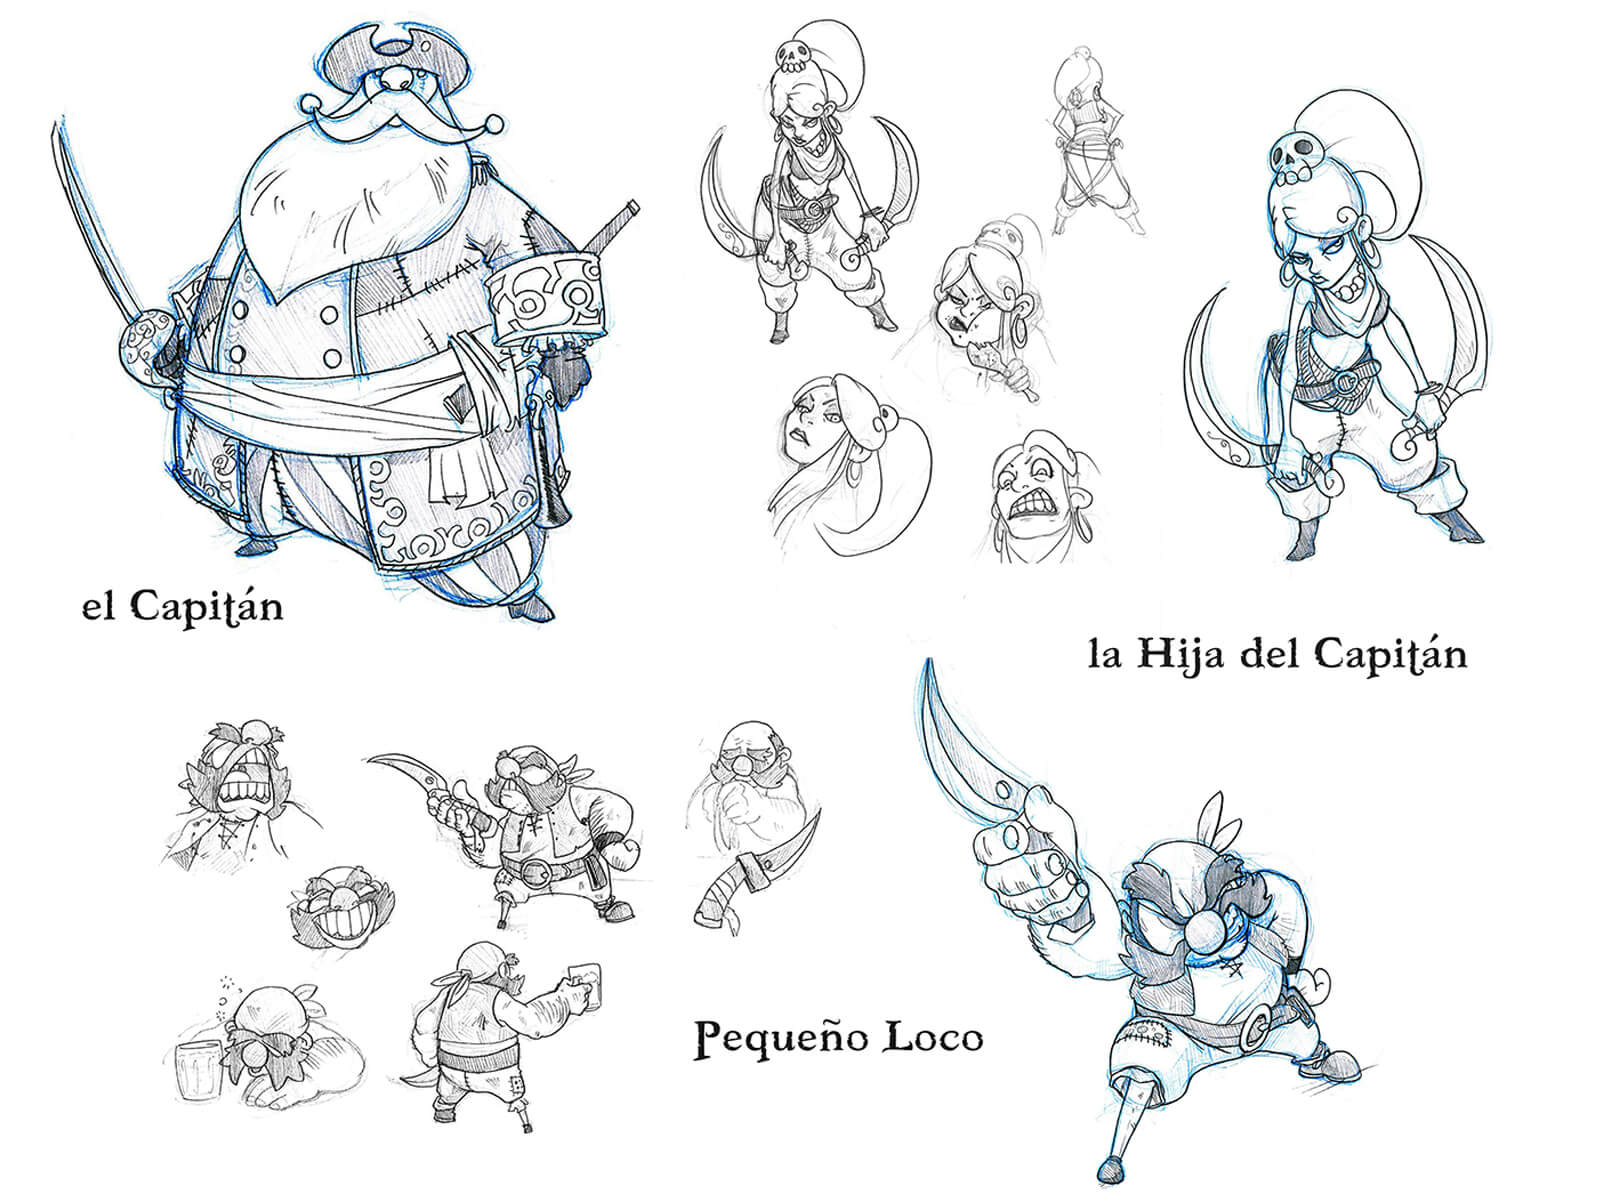 Black-and-white sketches of a rotund pirate captain, his sword-wielding daughter, and an elderly pirate with a dagger.